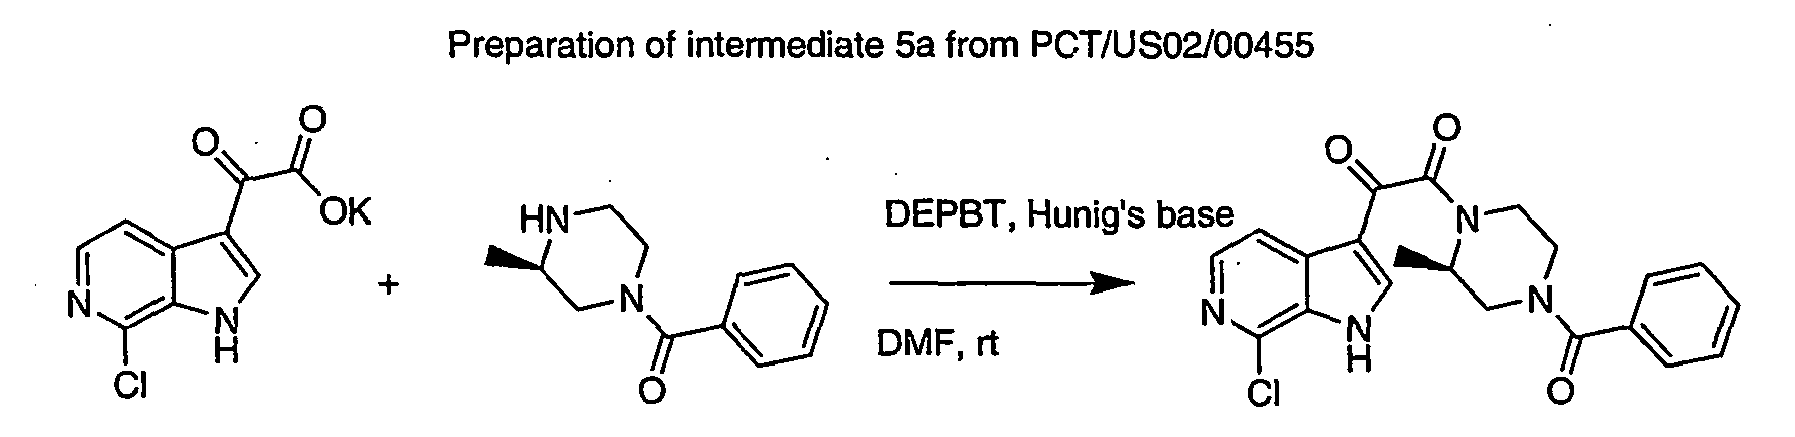 INDOLE, AZAINDOLE AND RELATED HETEROCYCLIC N-SUBSTITUTED PIPERAZINE